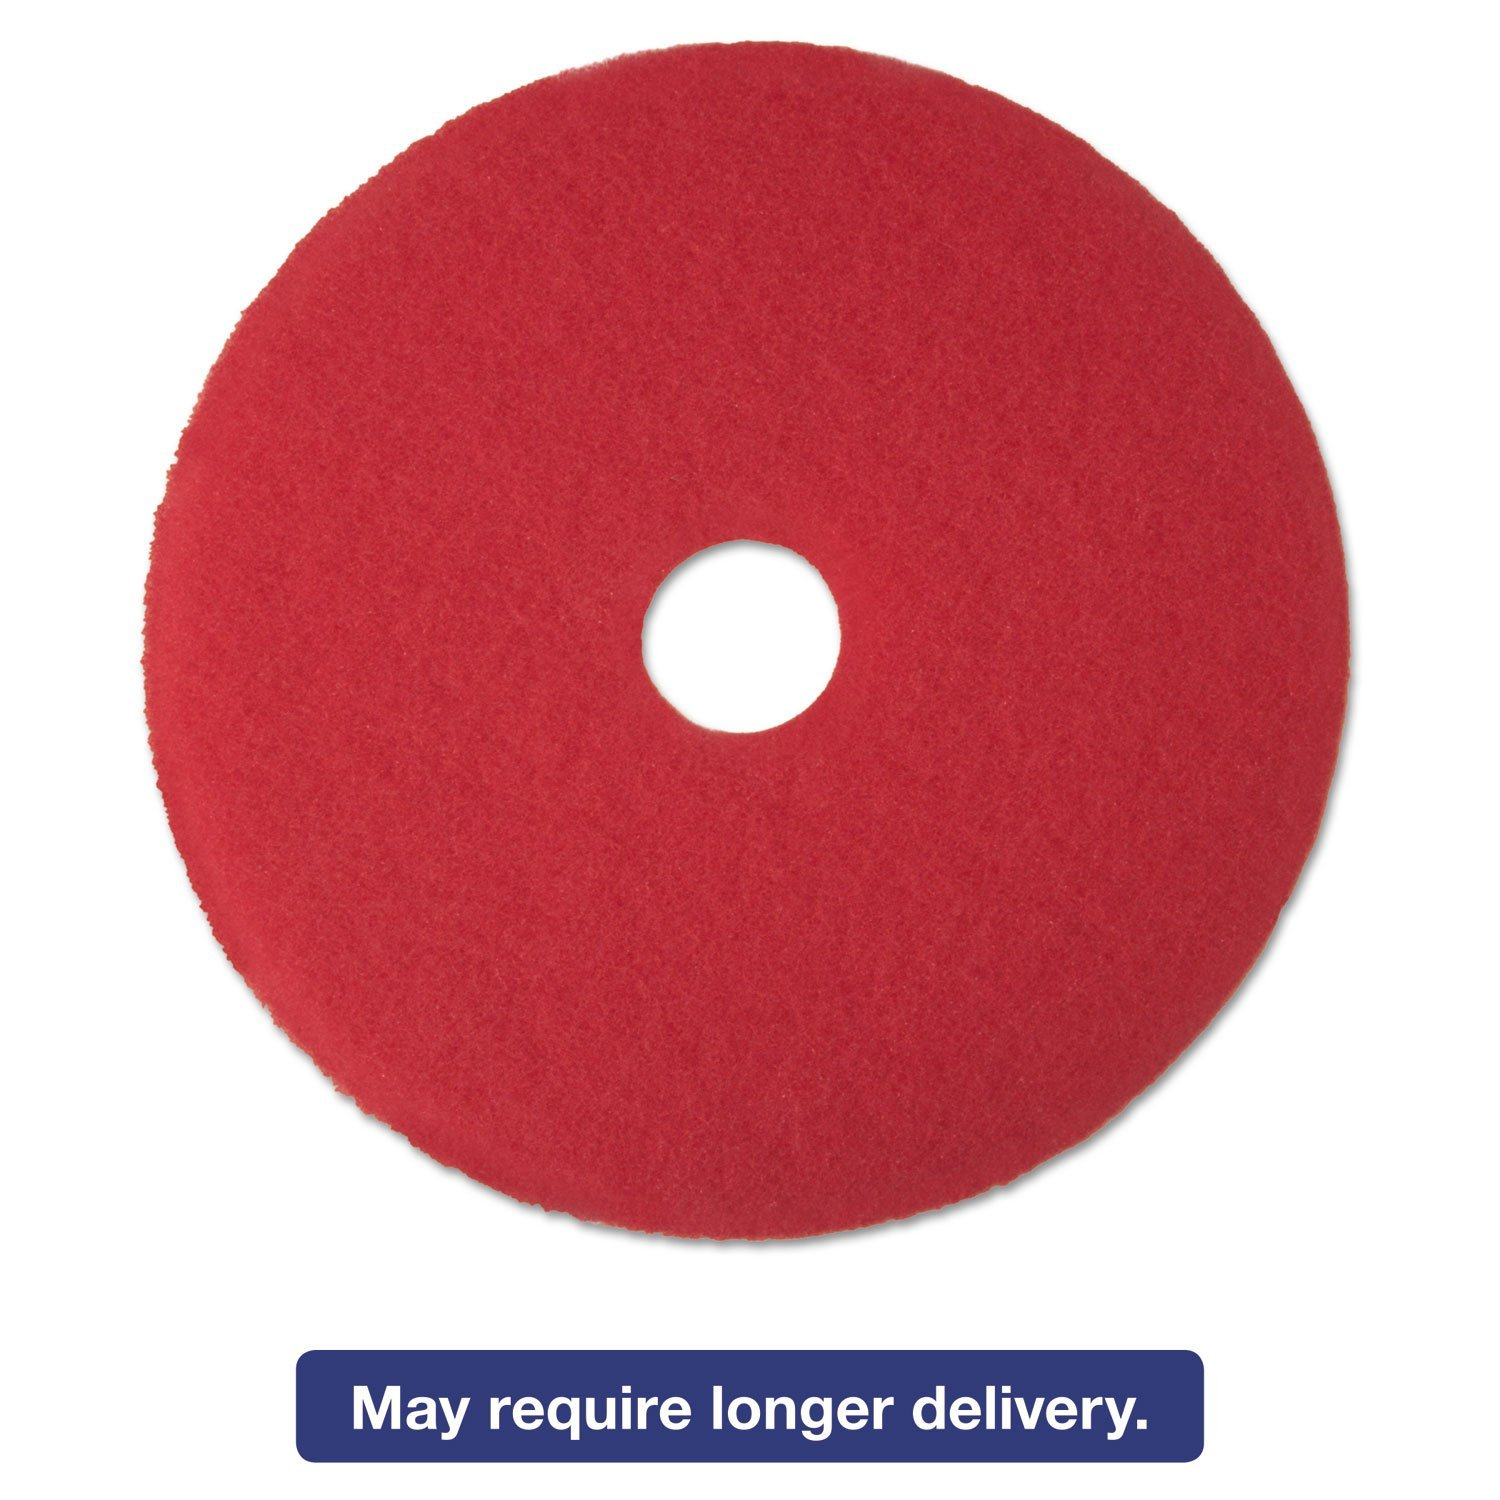 "3M 08393 Red Buffer Floor Pads 5100 Low-Speed 18"" 5/Carton"